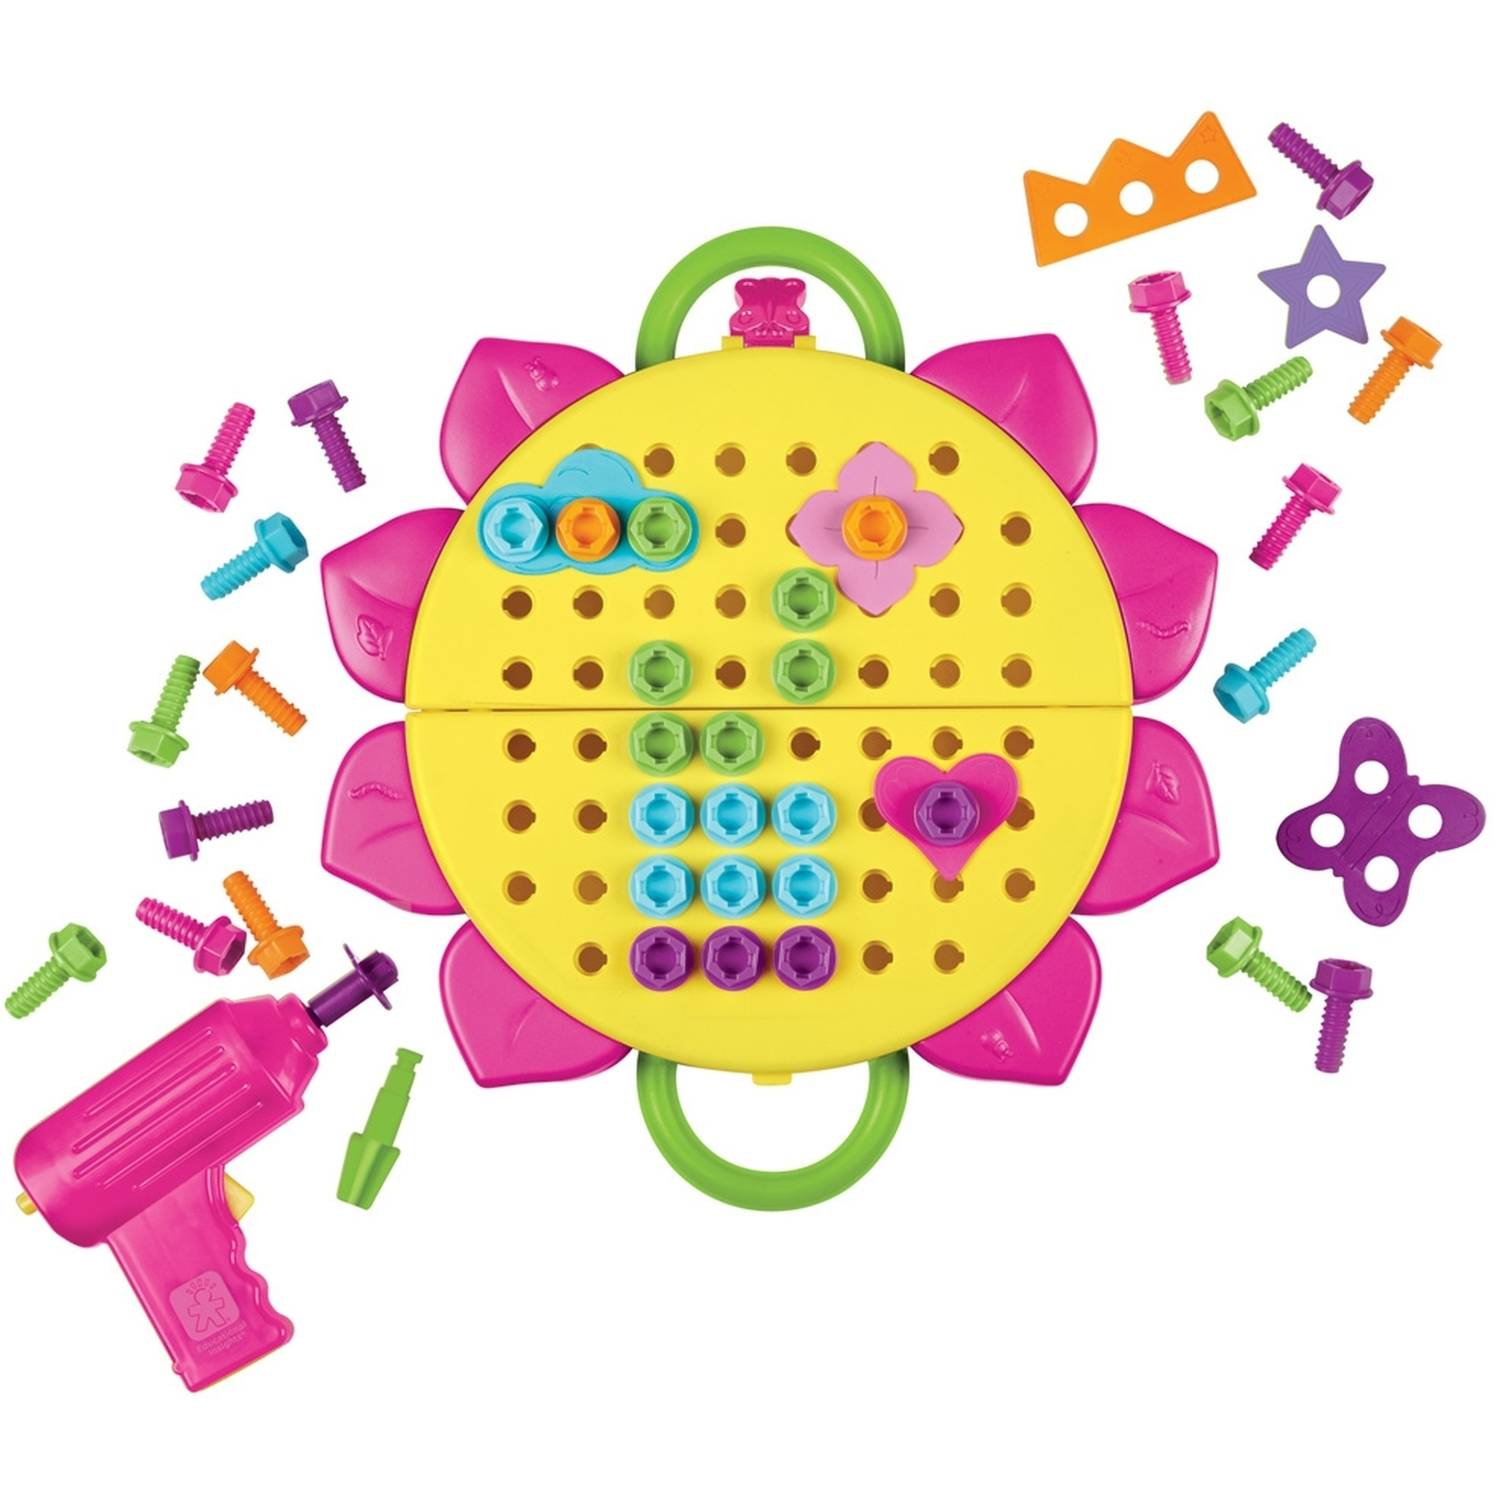 Educational Insights Design Drill Flower Power Studio Walmartcom